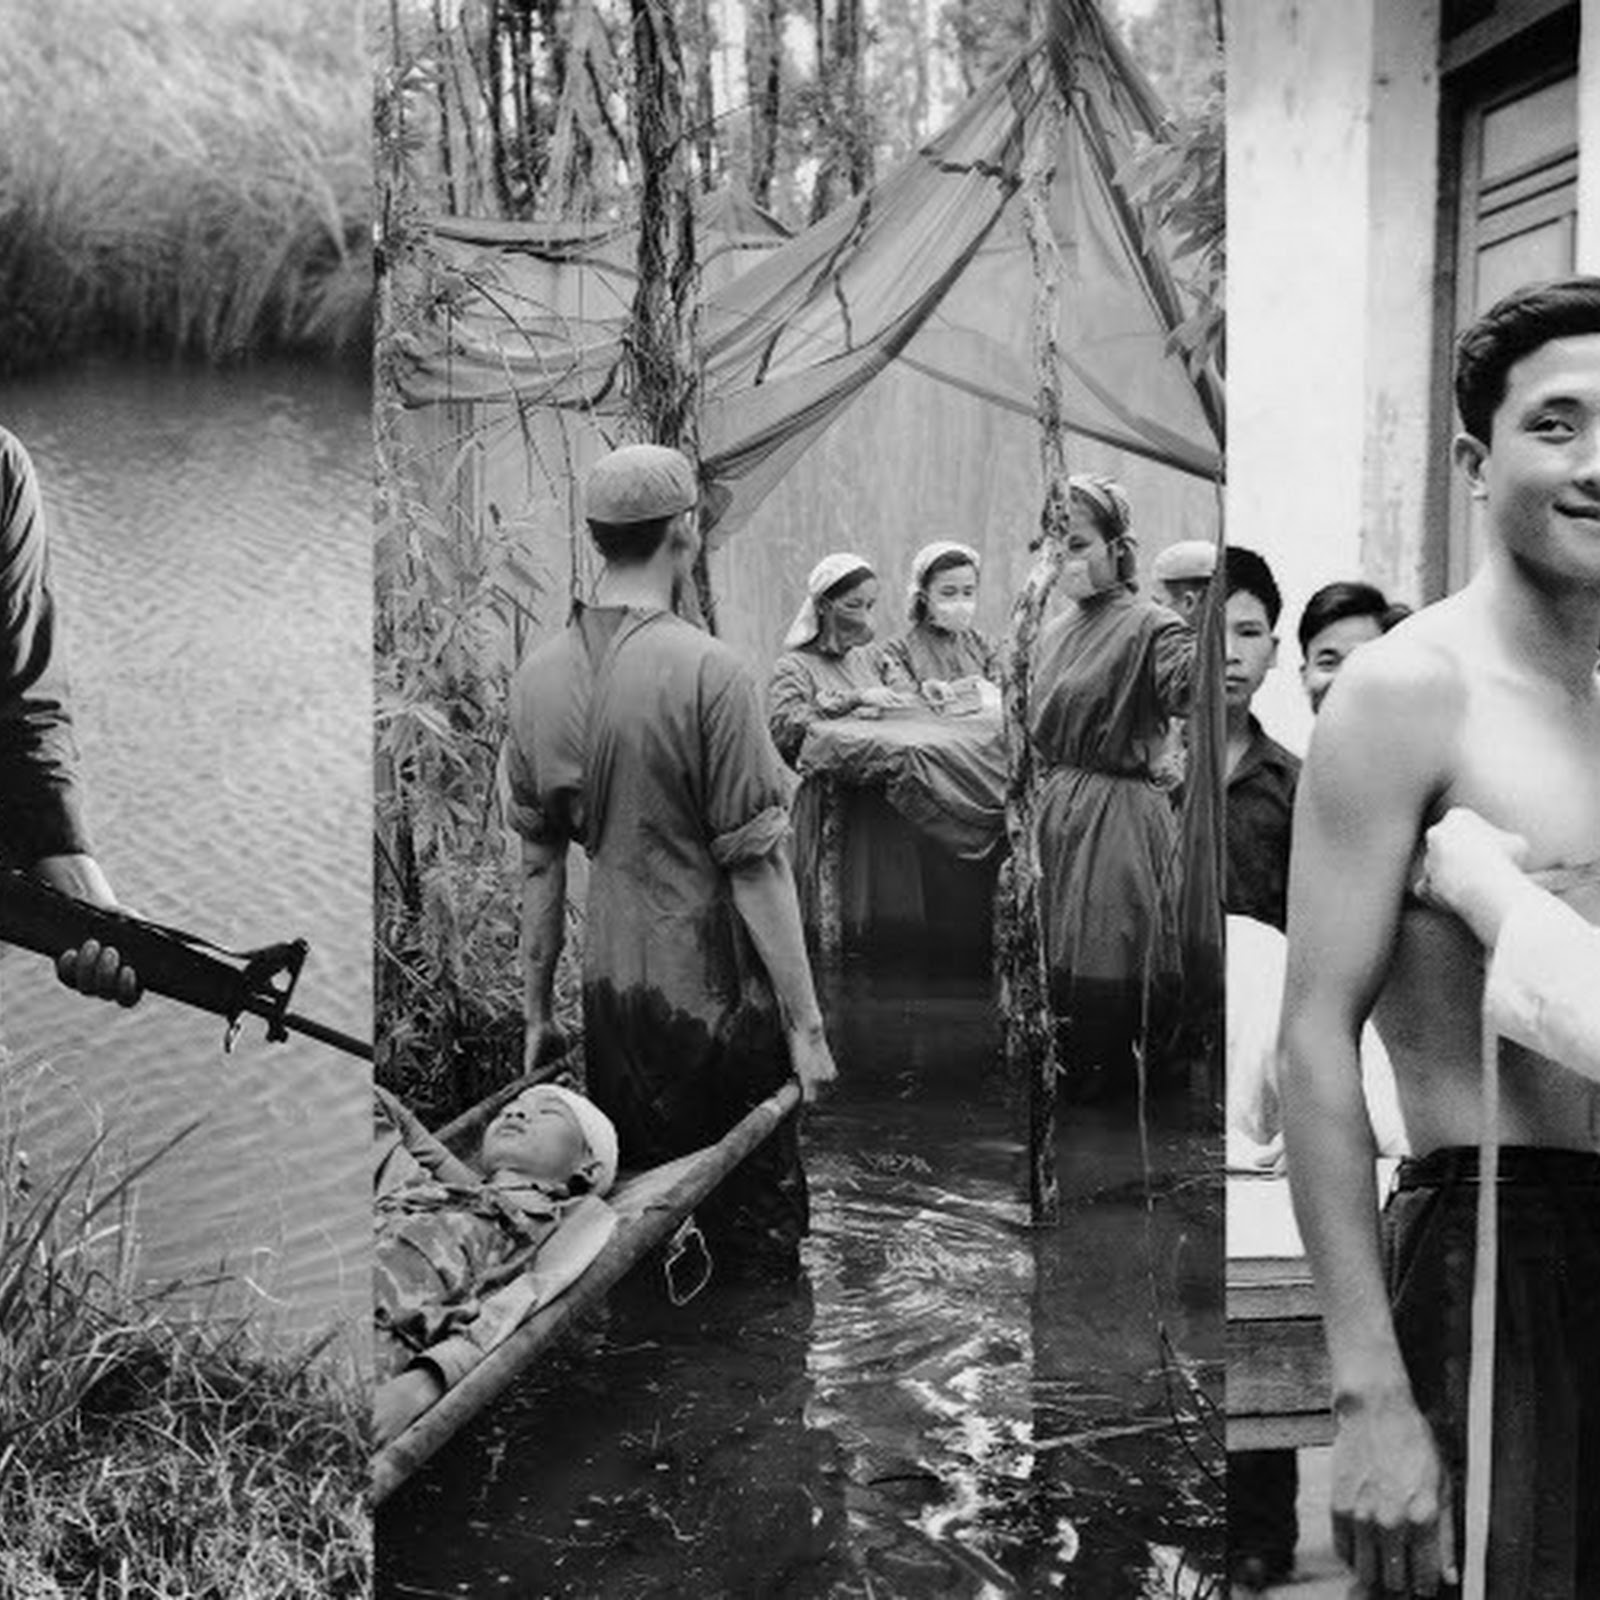 Unseen Pictures of The Vietnam War From The Other Side